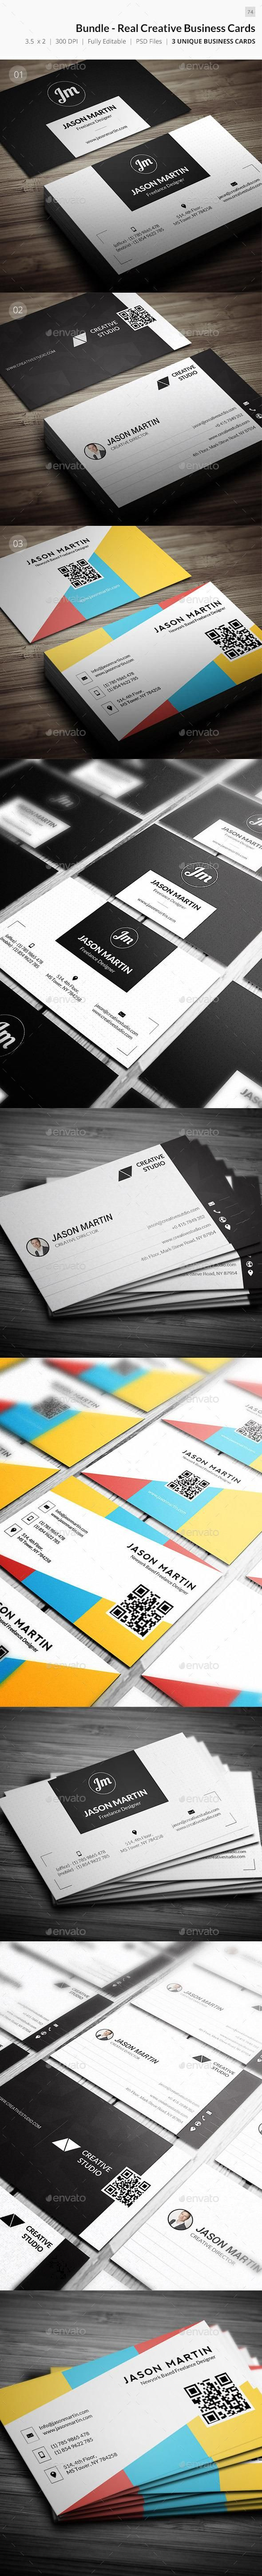 363 Best Business Card Design Images On Pinterest Business Card